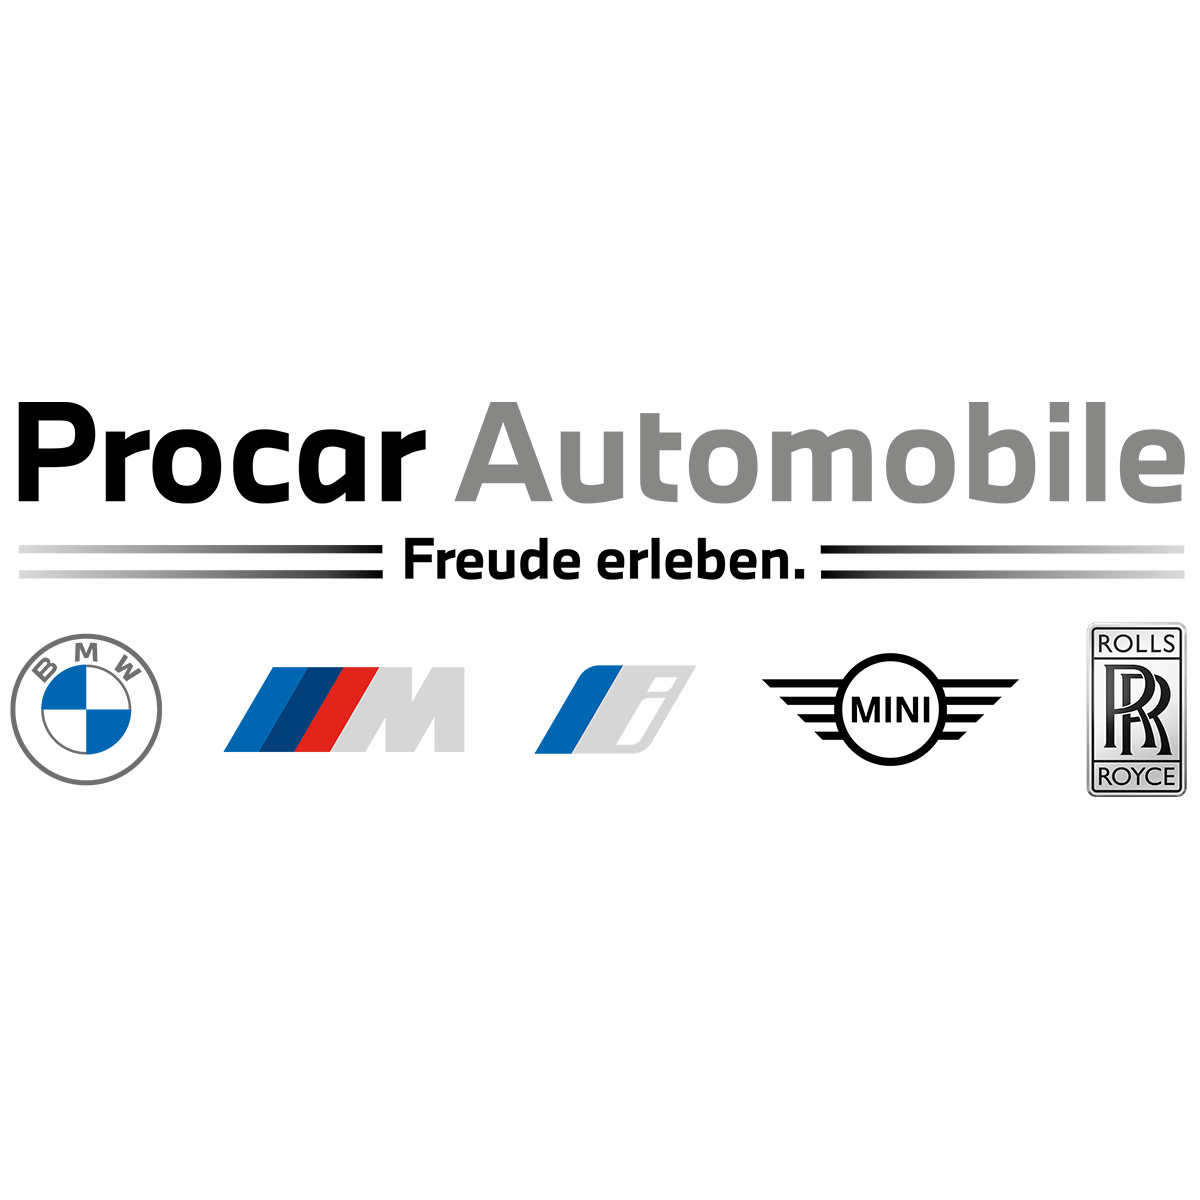 Procar Automobile Logo